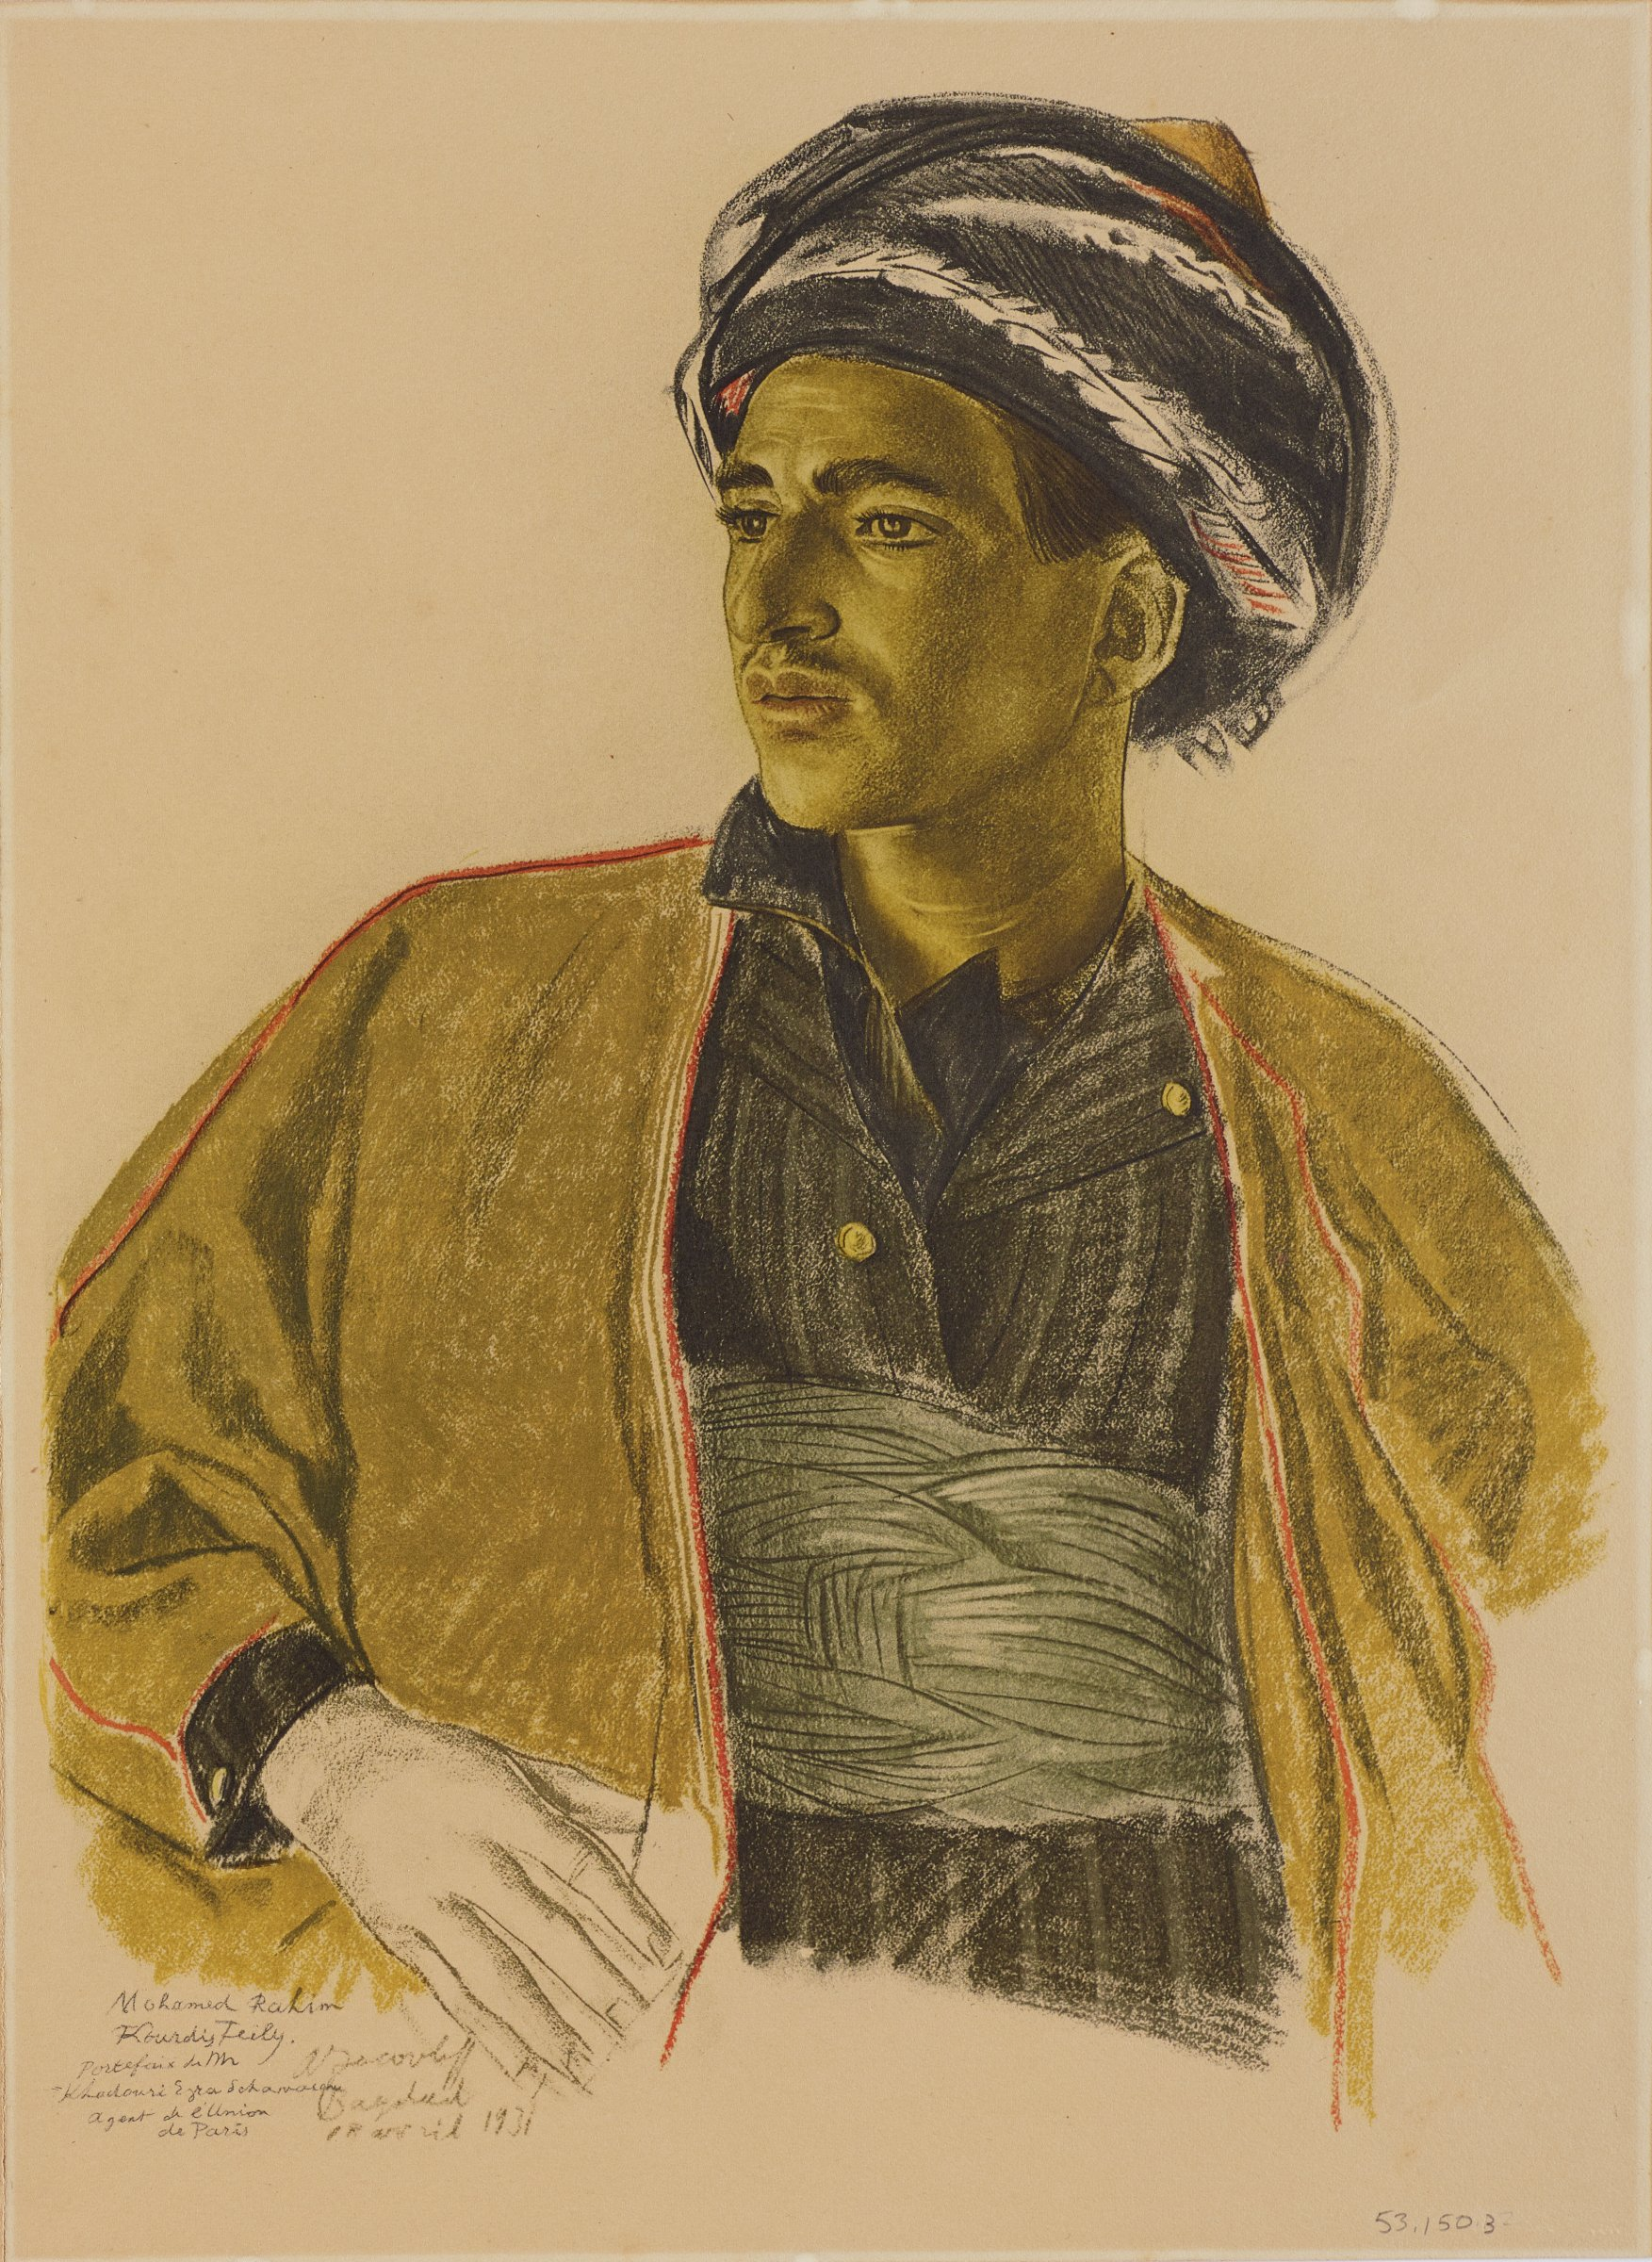 Half length portrait of male figure wearing a turban and a black shirt with a grey sash under a yellow coat. His body faces forward as he turns his head slightly to the left. This series is a product of Jacovleff's involvement in the Expédition Citroën Centre-Asie.